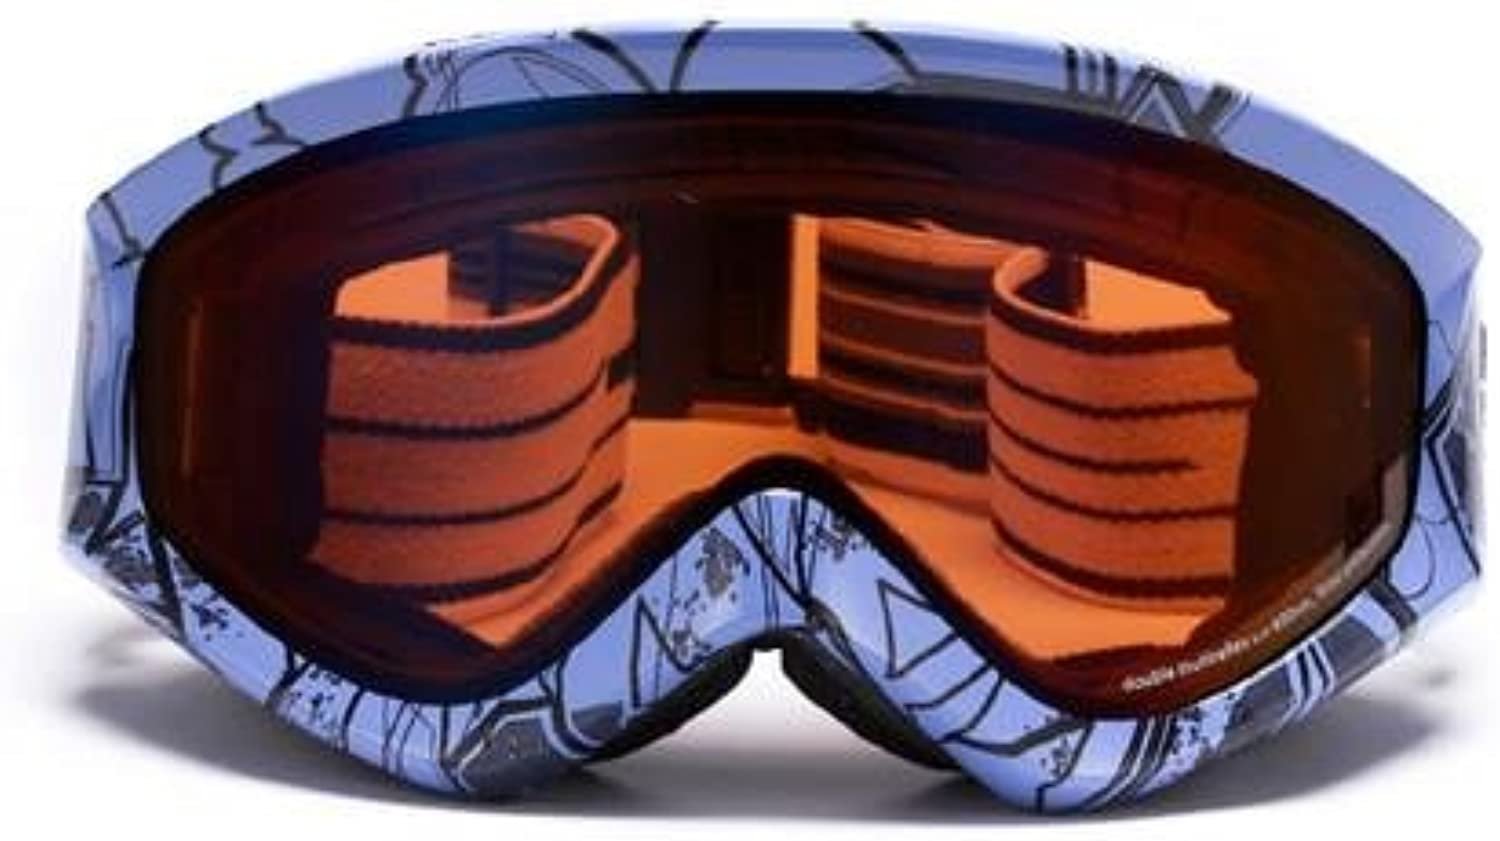 ShopSquare64 Nice FACE NF 125 Cylinder Snowboard Goggles Mask Skiing Motorcycle Predection Ski Anti UV